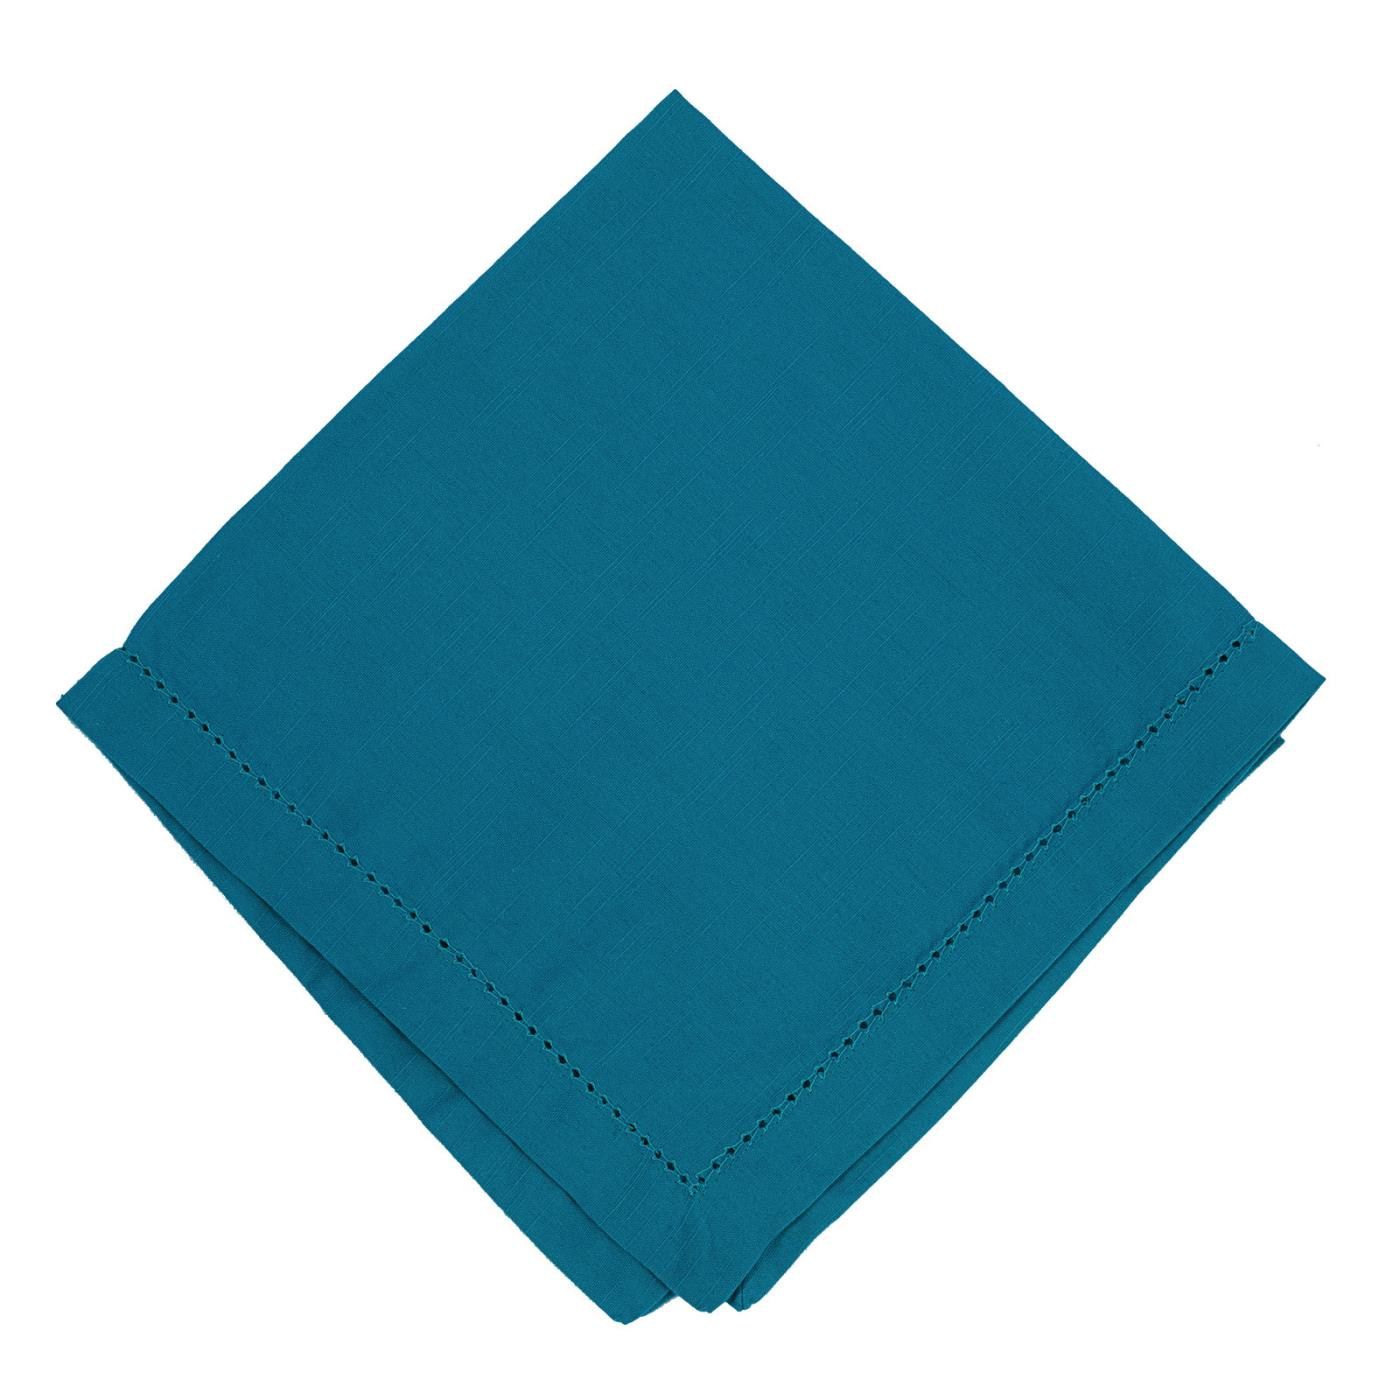 Turquoise - Linen - Hemstitched